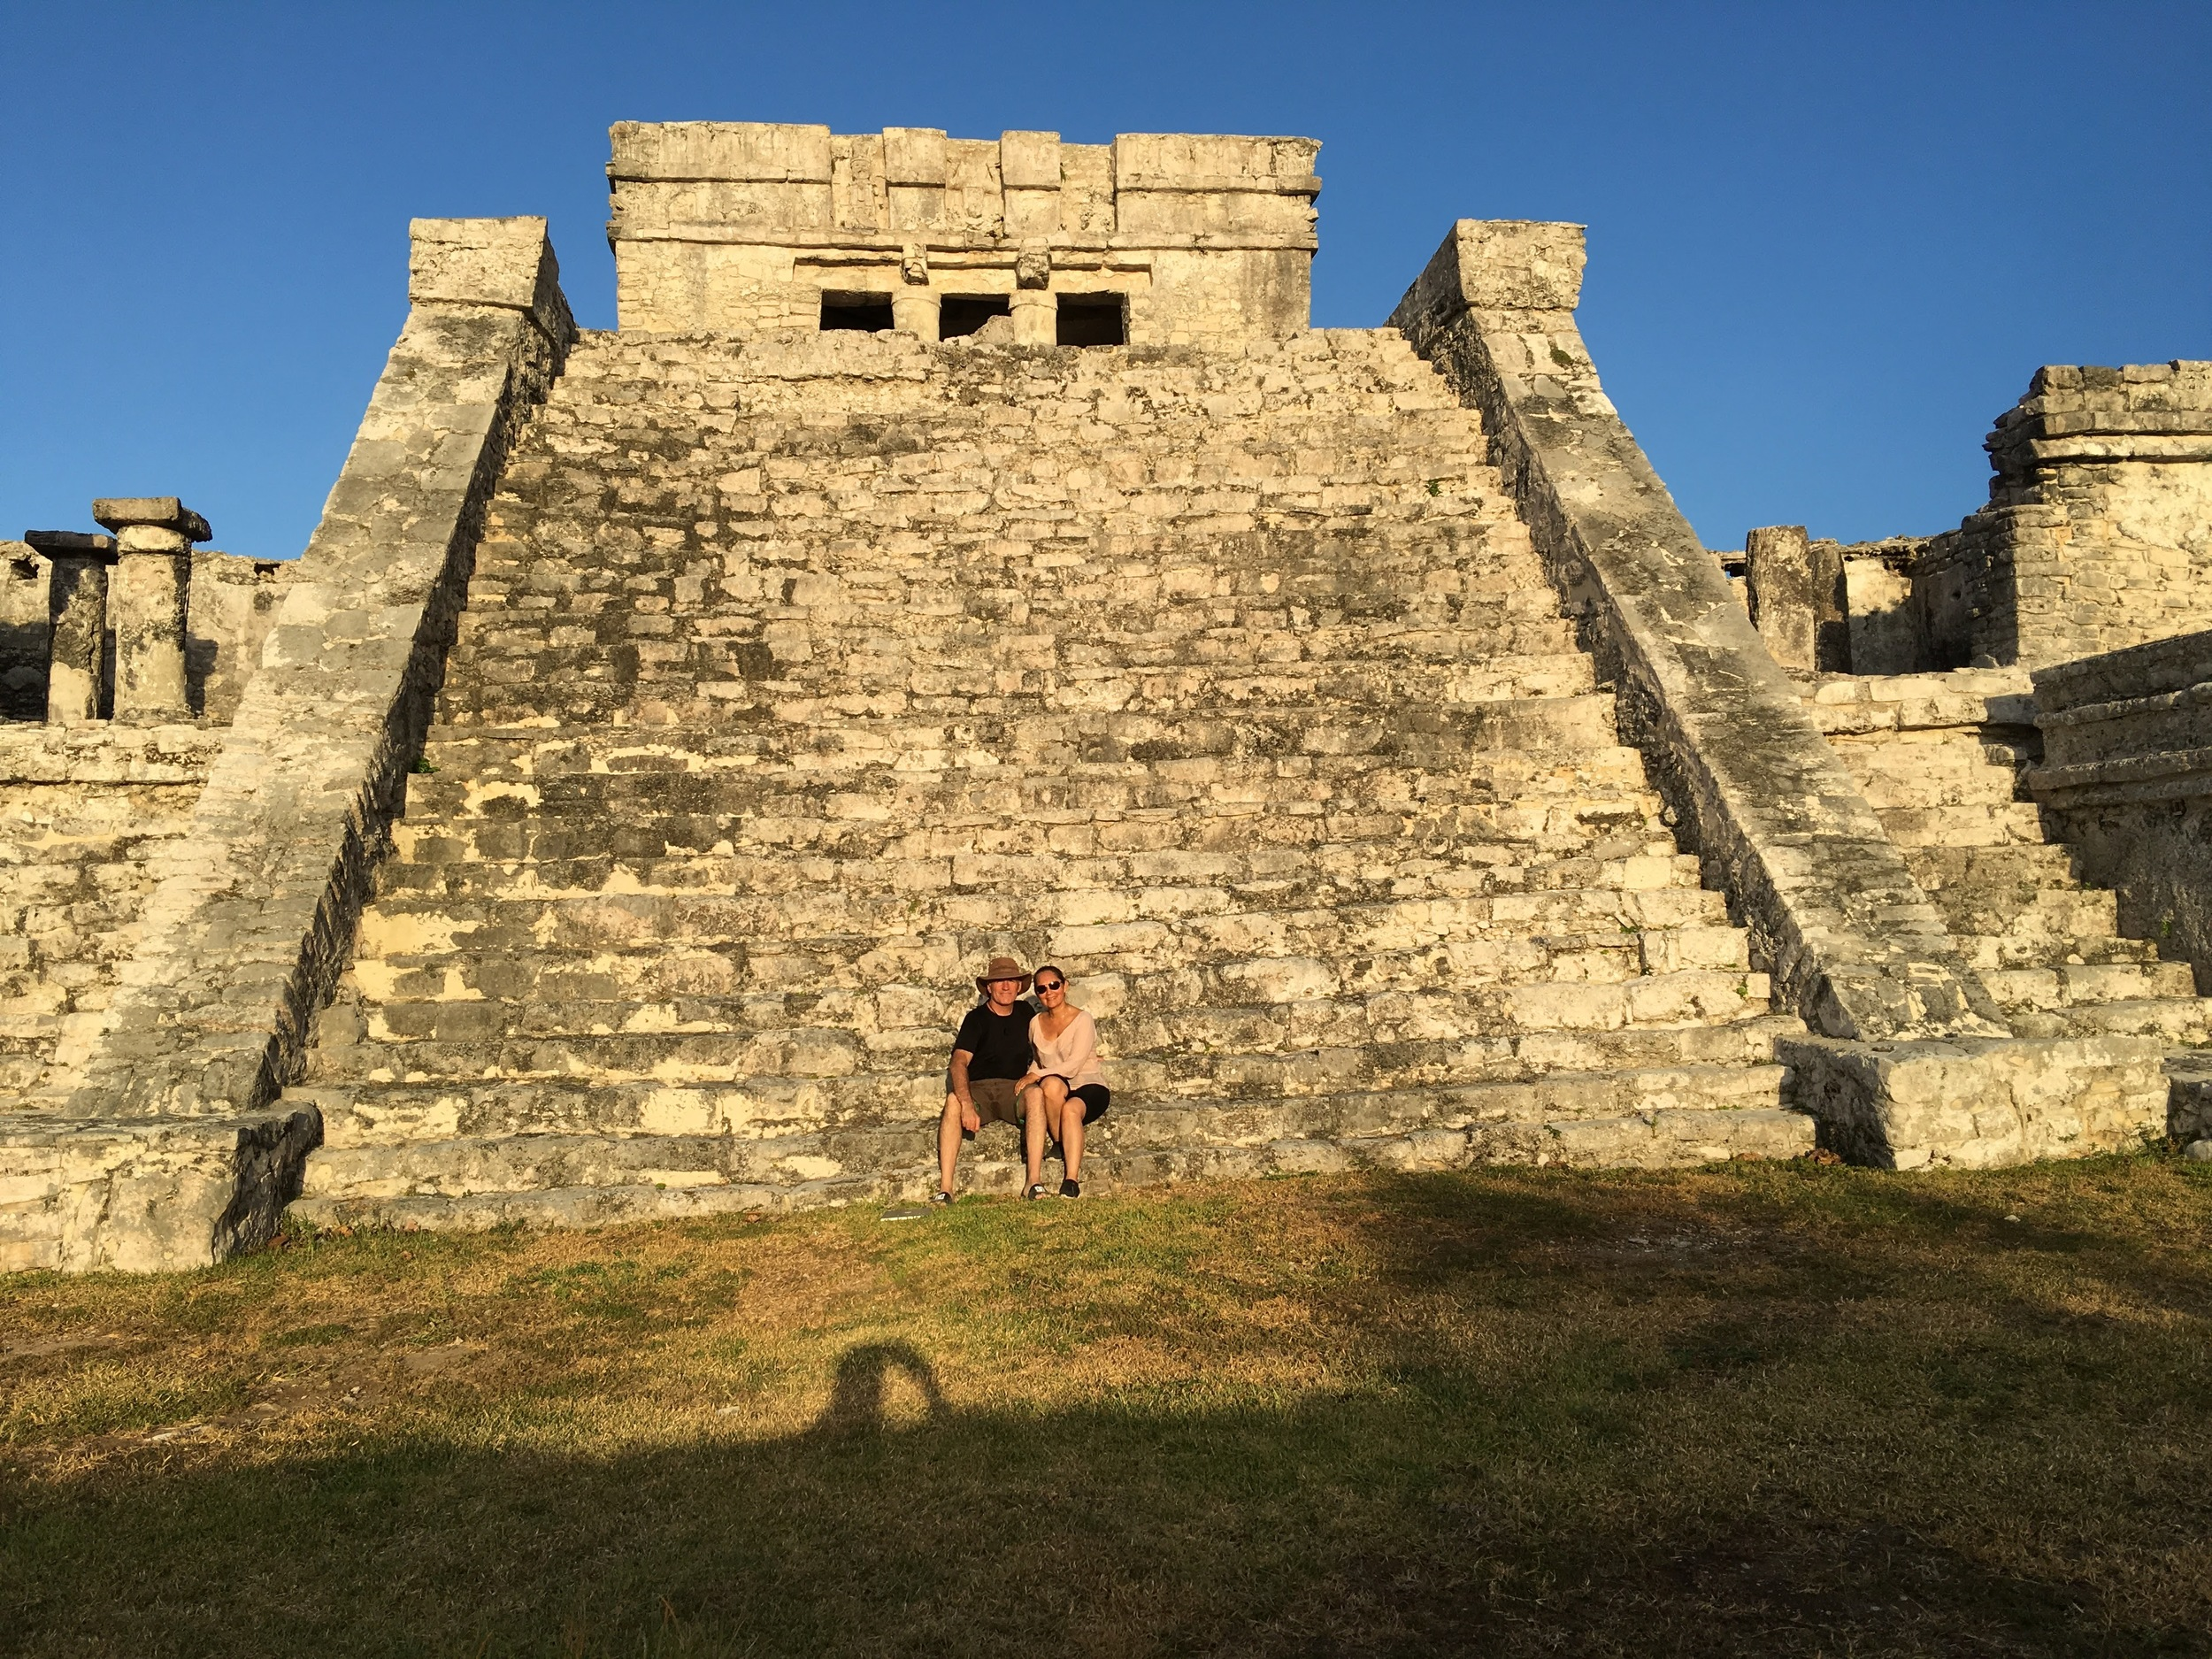 A security guard let us jump the rope and sit on the main pyramid for this photo.